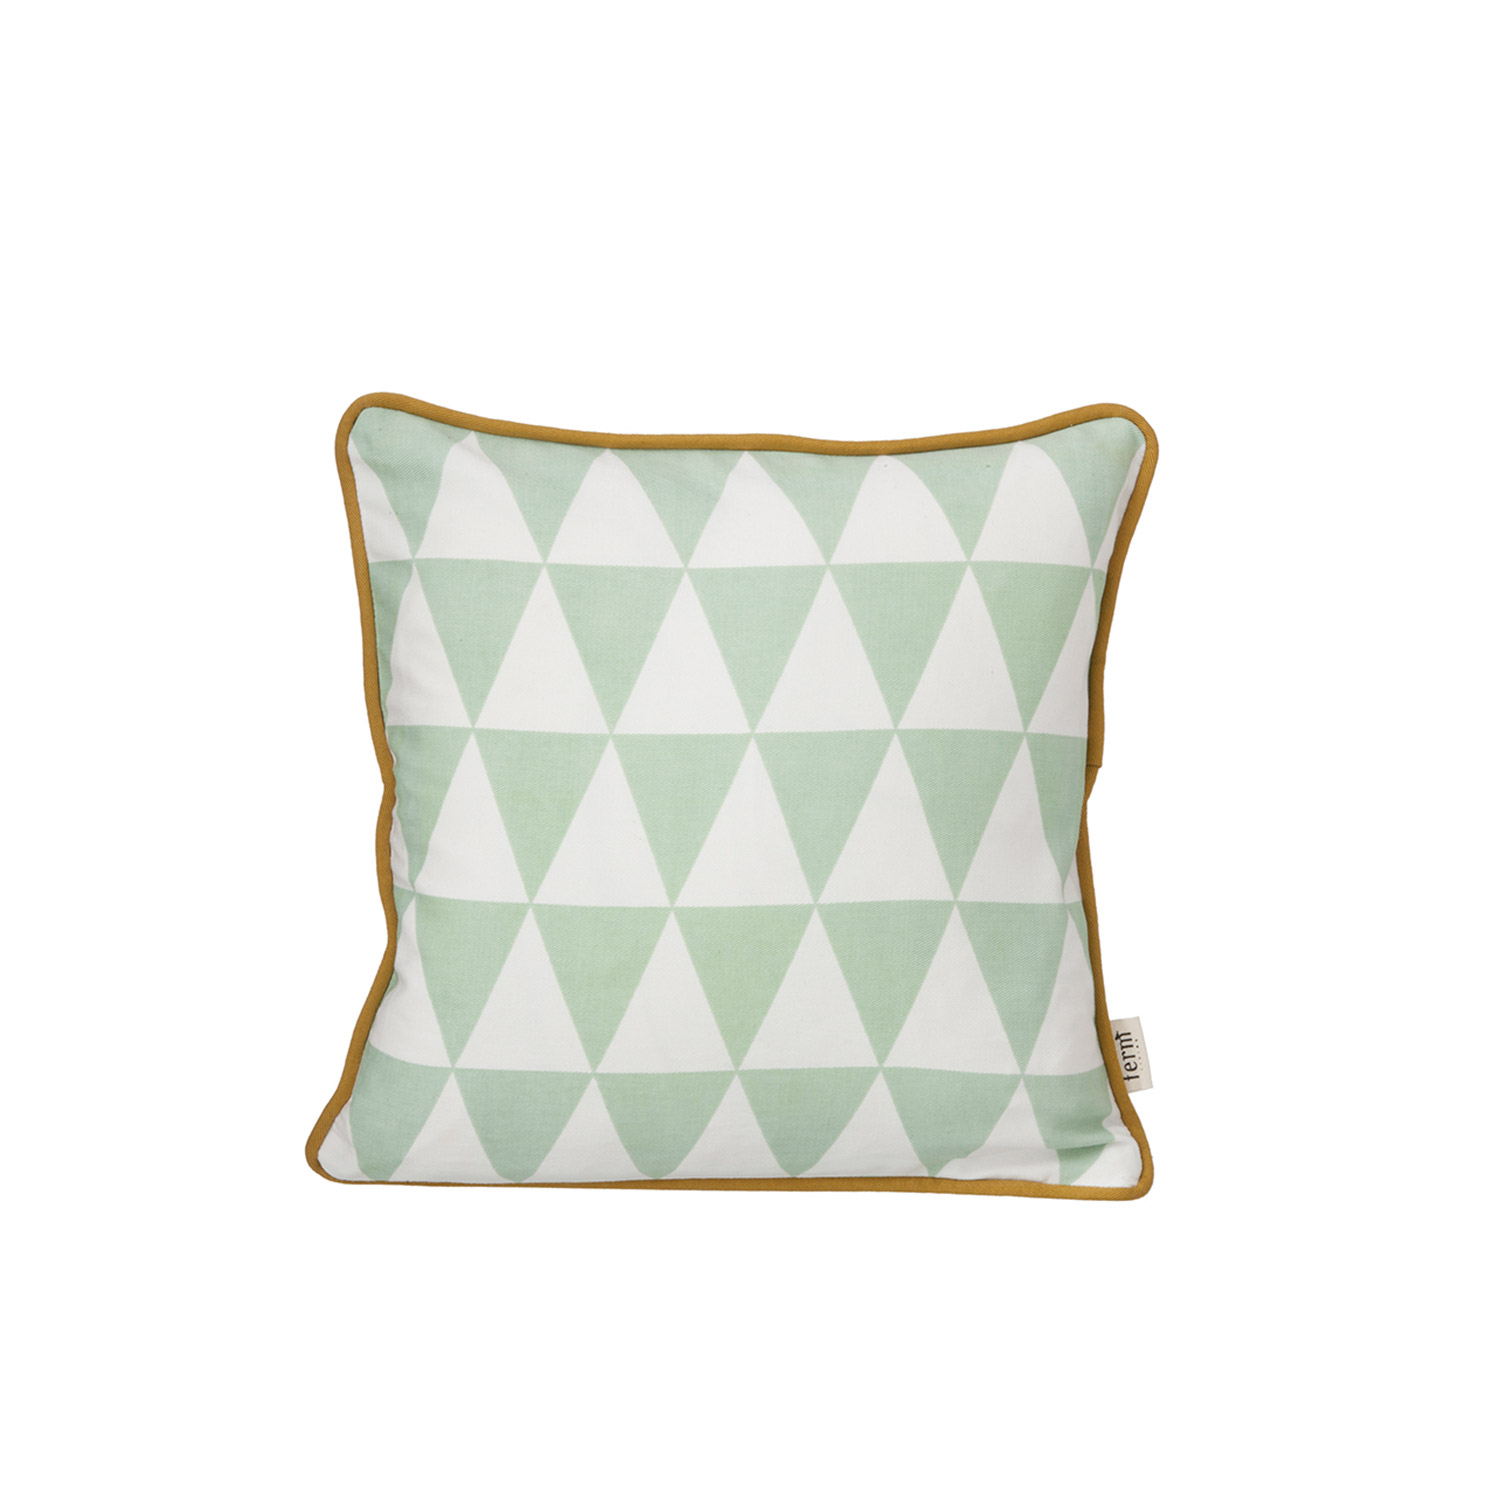 Little Geometry kudde, mint